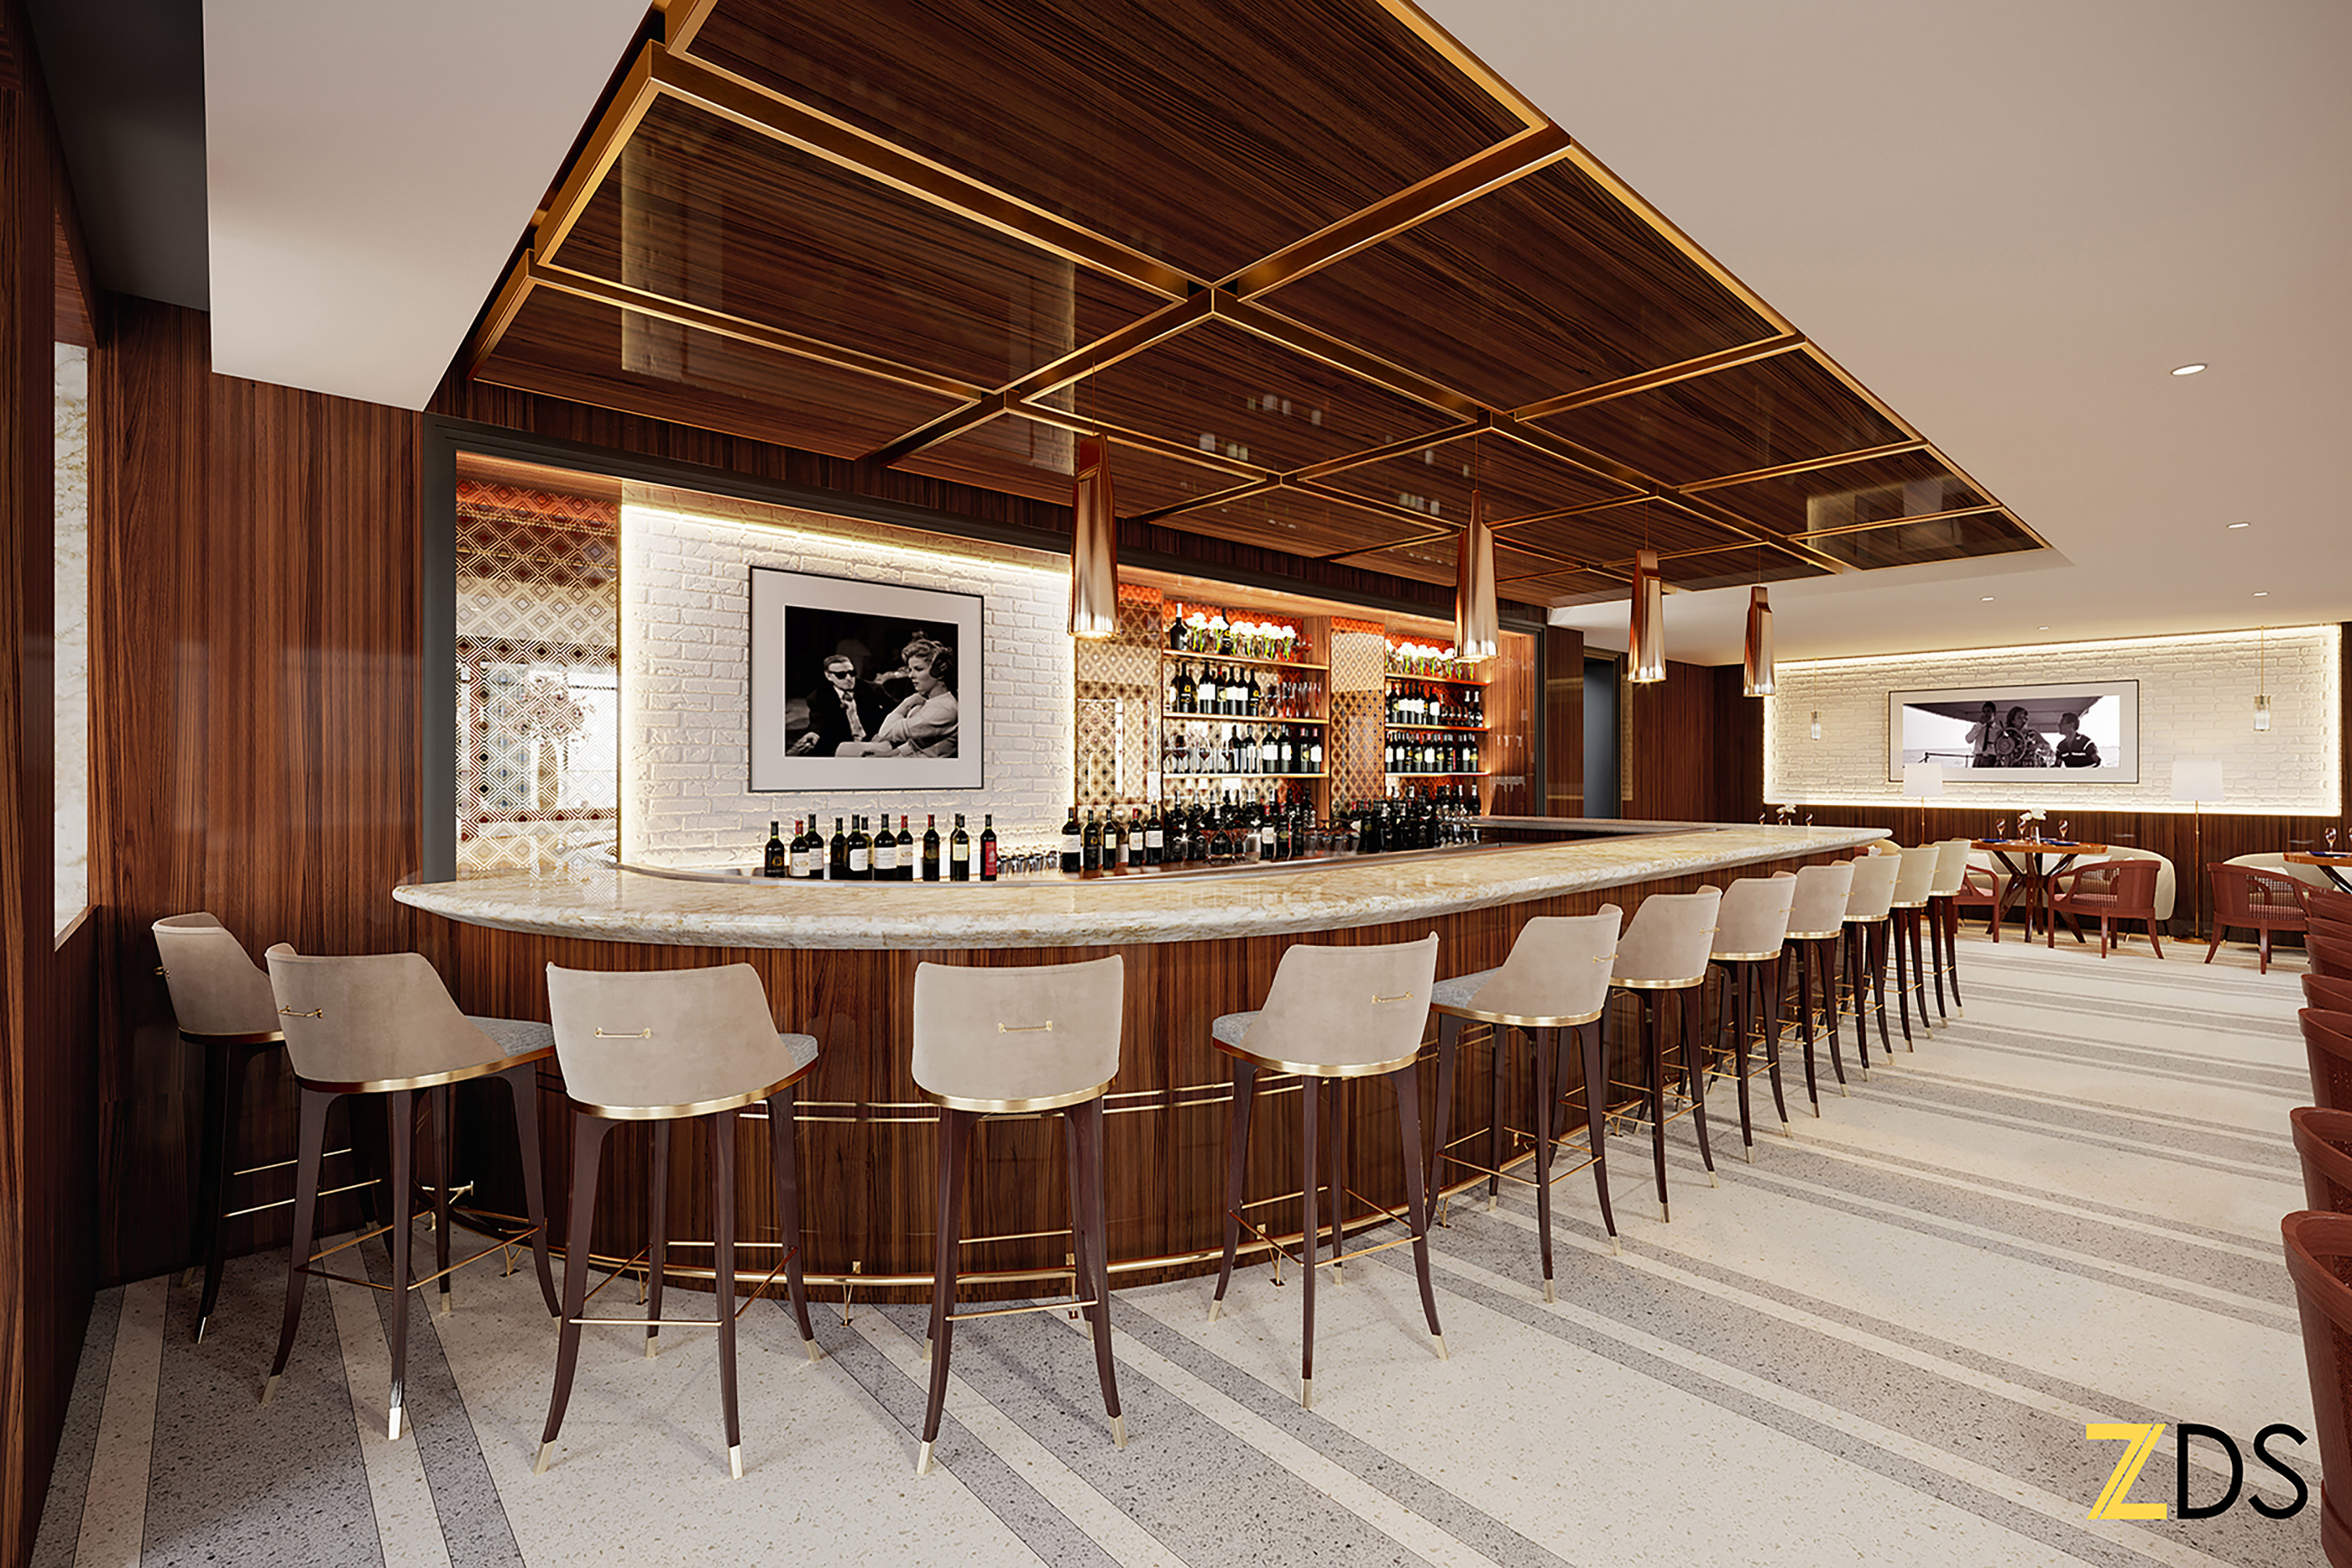 The Bellini Restaurant & Bar will open its doors inside The Beatrice.